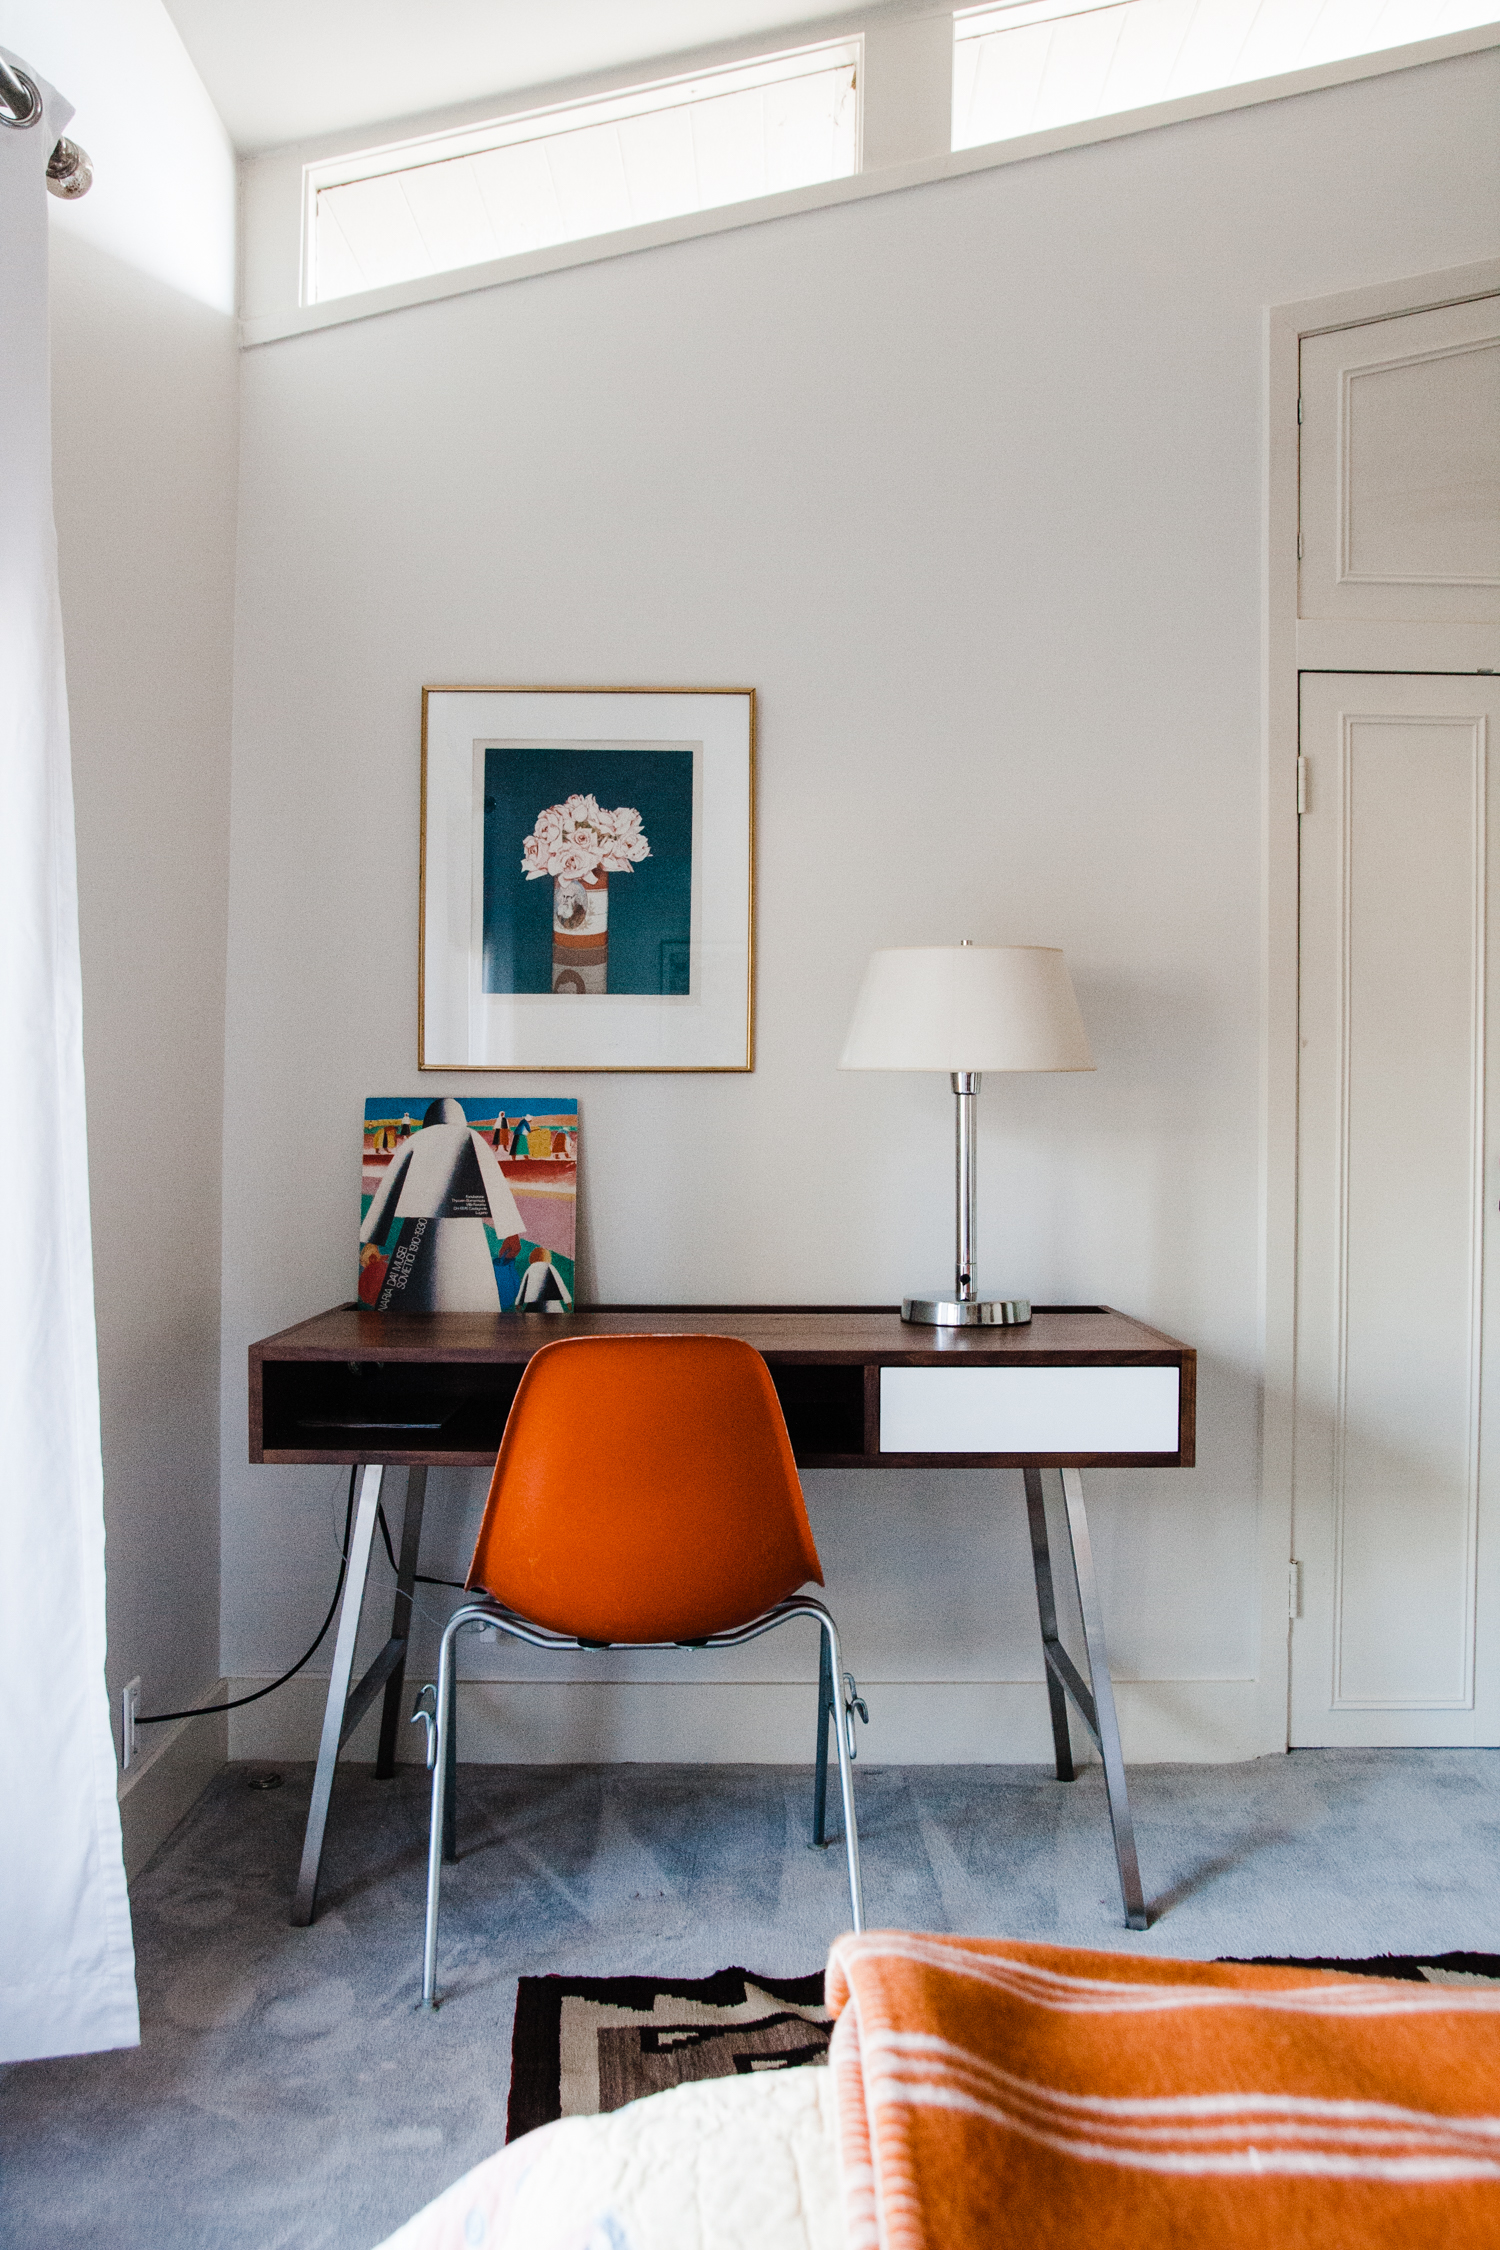 The orange vintage chair brought over the warm hues from the bed and gallery wall on the opposite side of the room.